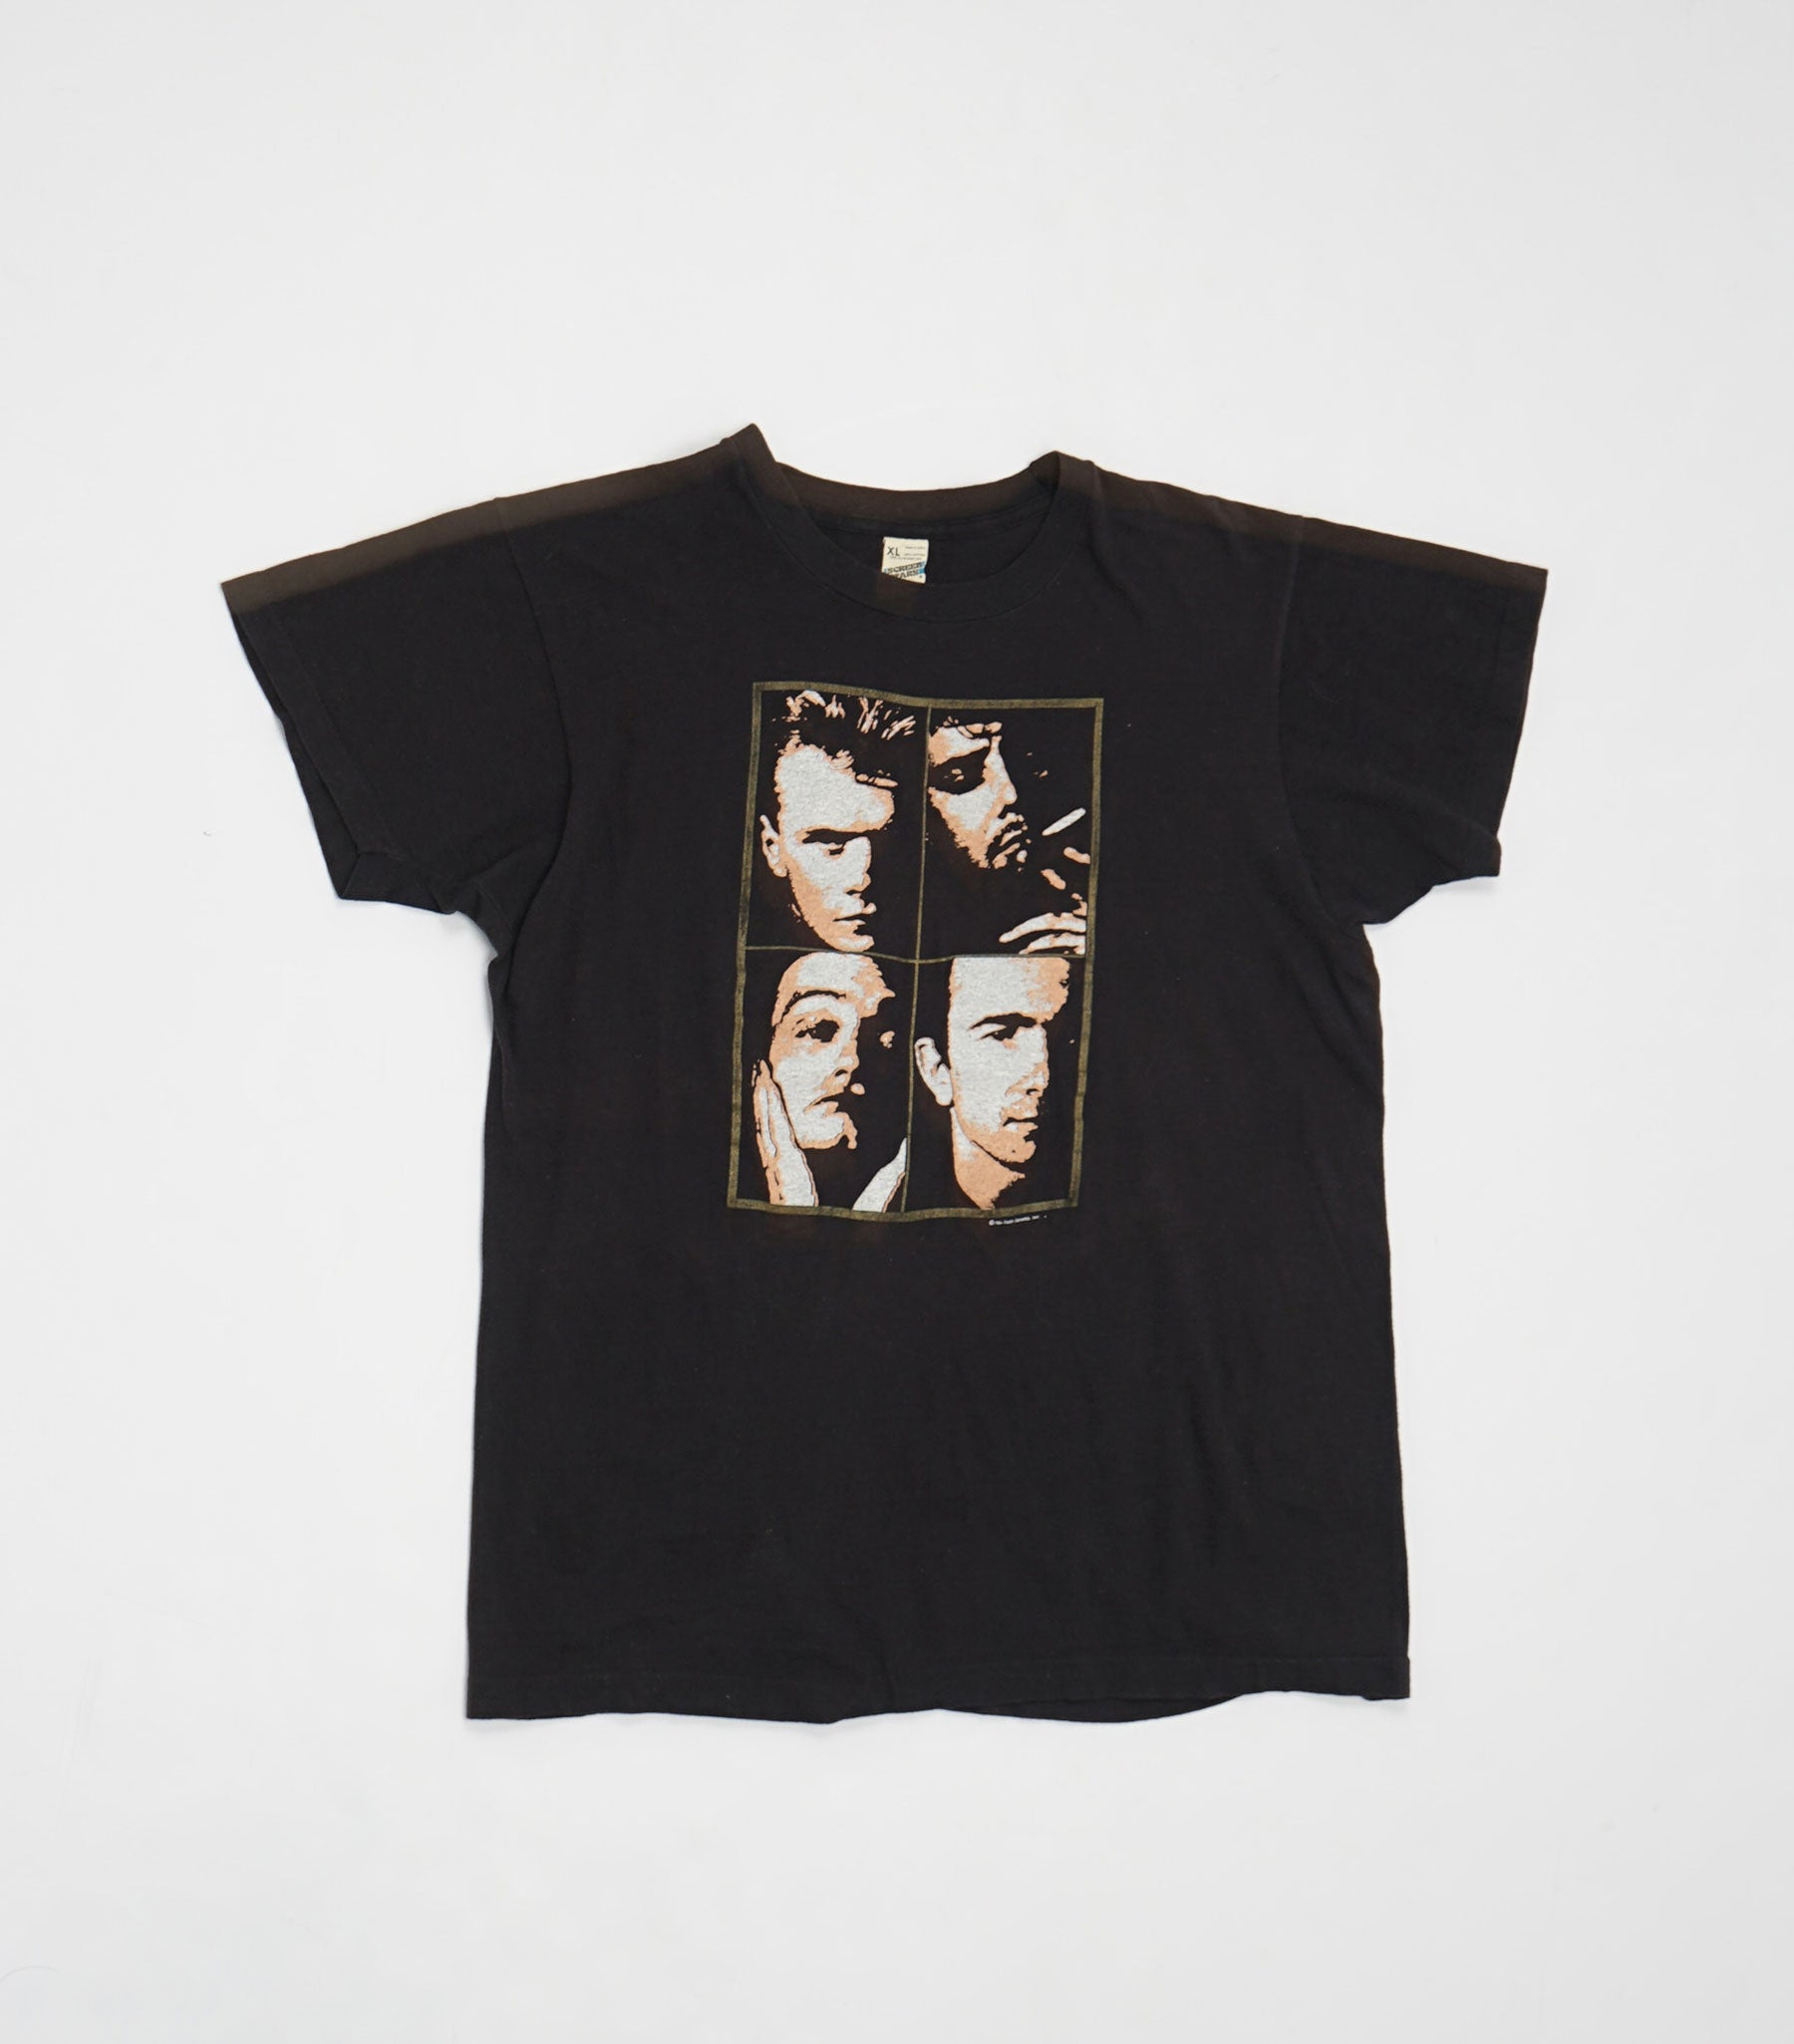 1986 U2 The Unforgettable Fire Tee